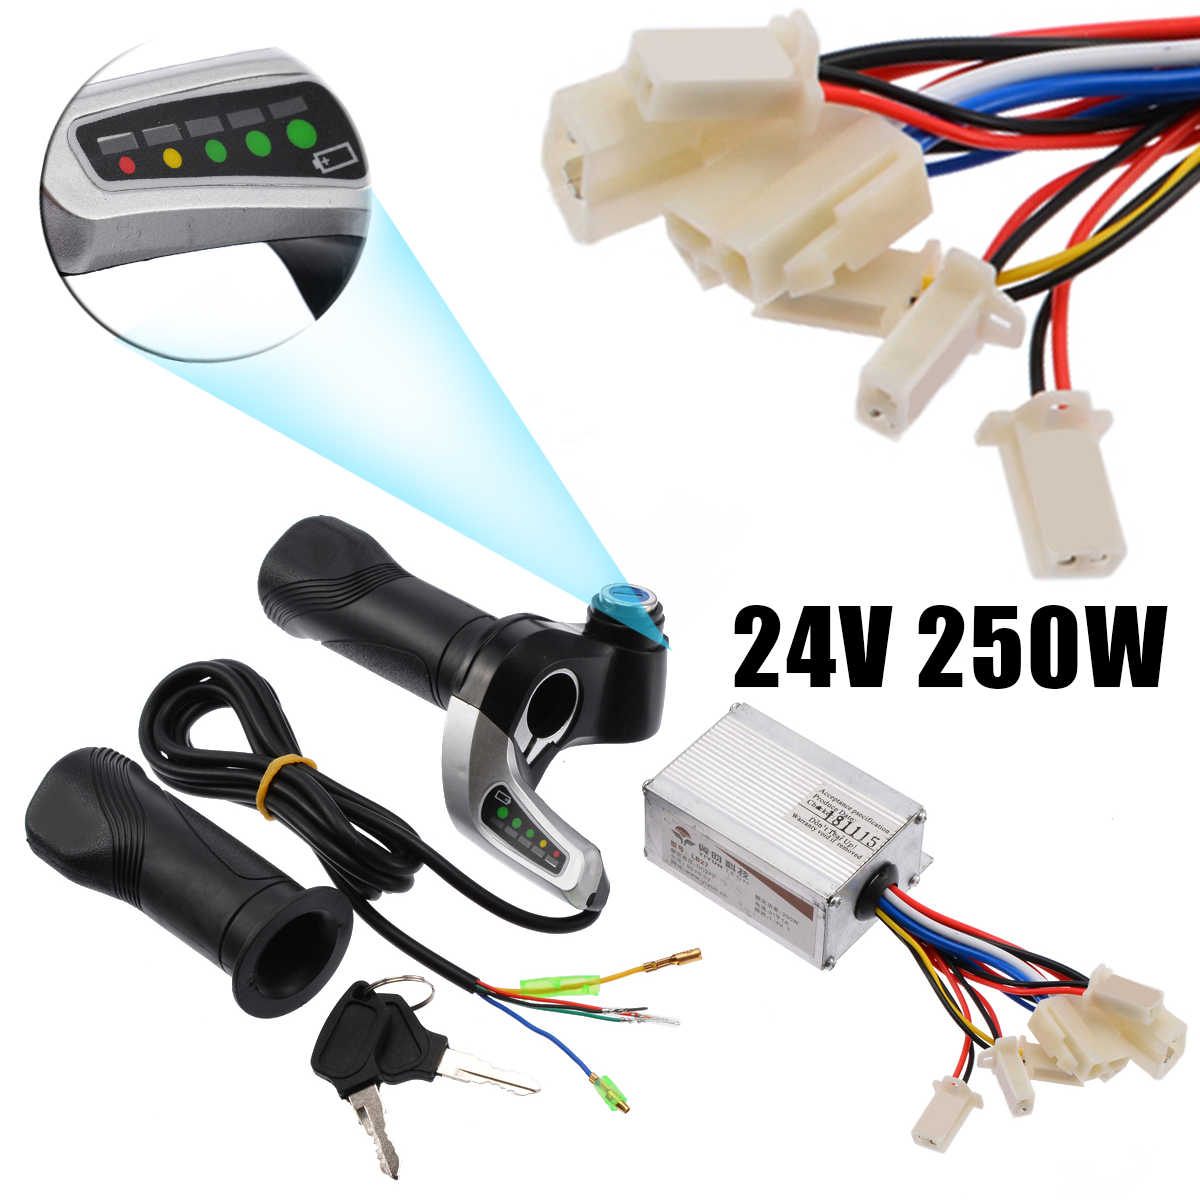 Redcolourful 24V 250W Motorrad Pinsel Speed Controller /& Scooter Throttle Twist Griffe